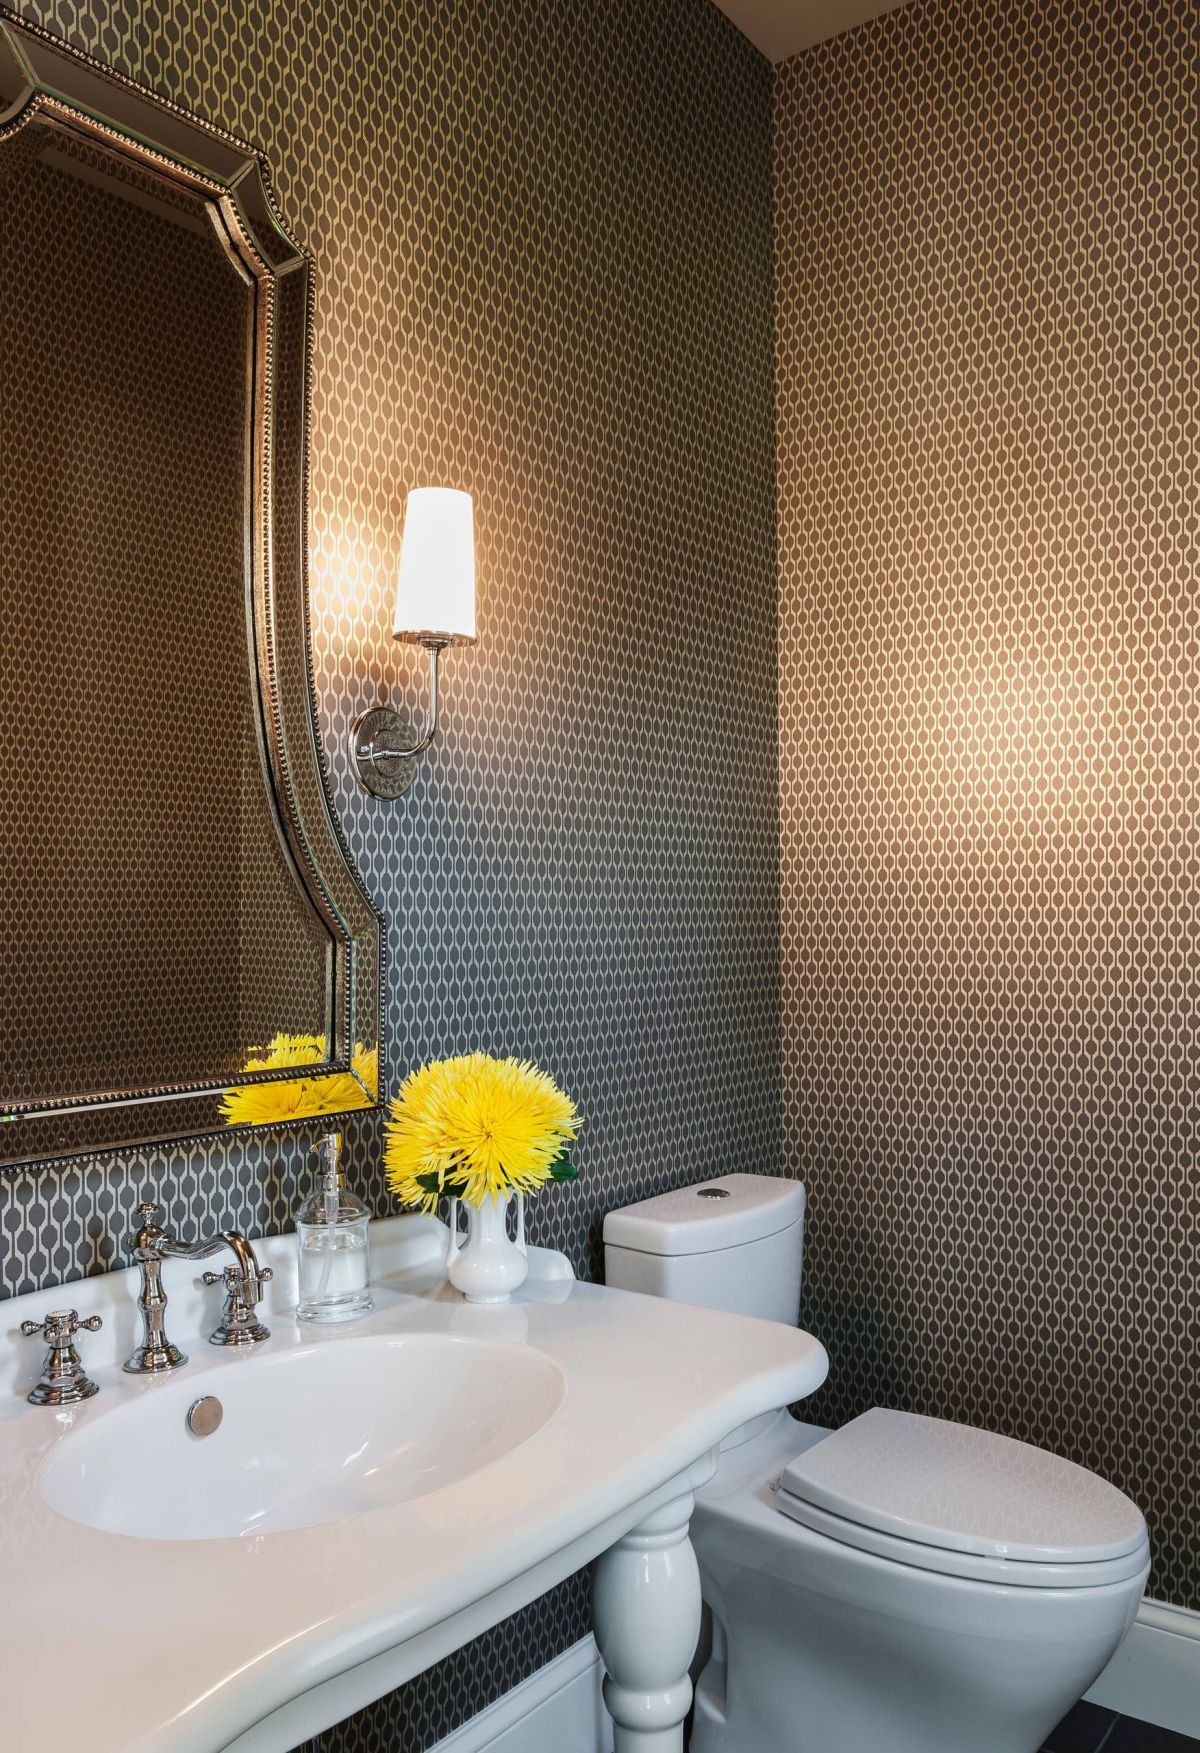 Luxe bathroom small pattern wallpaper